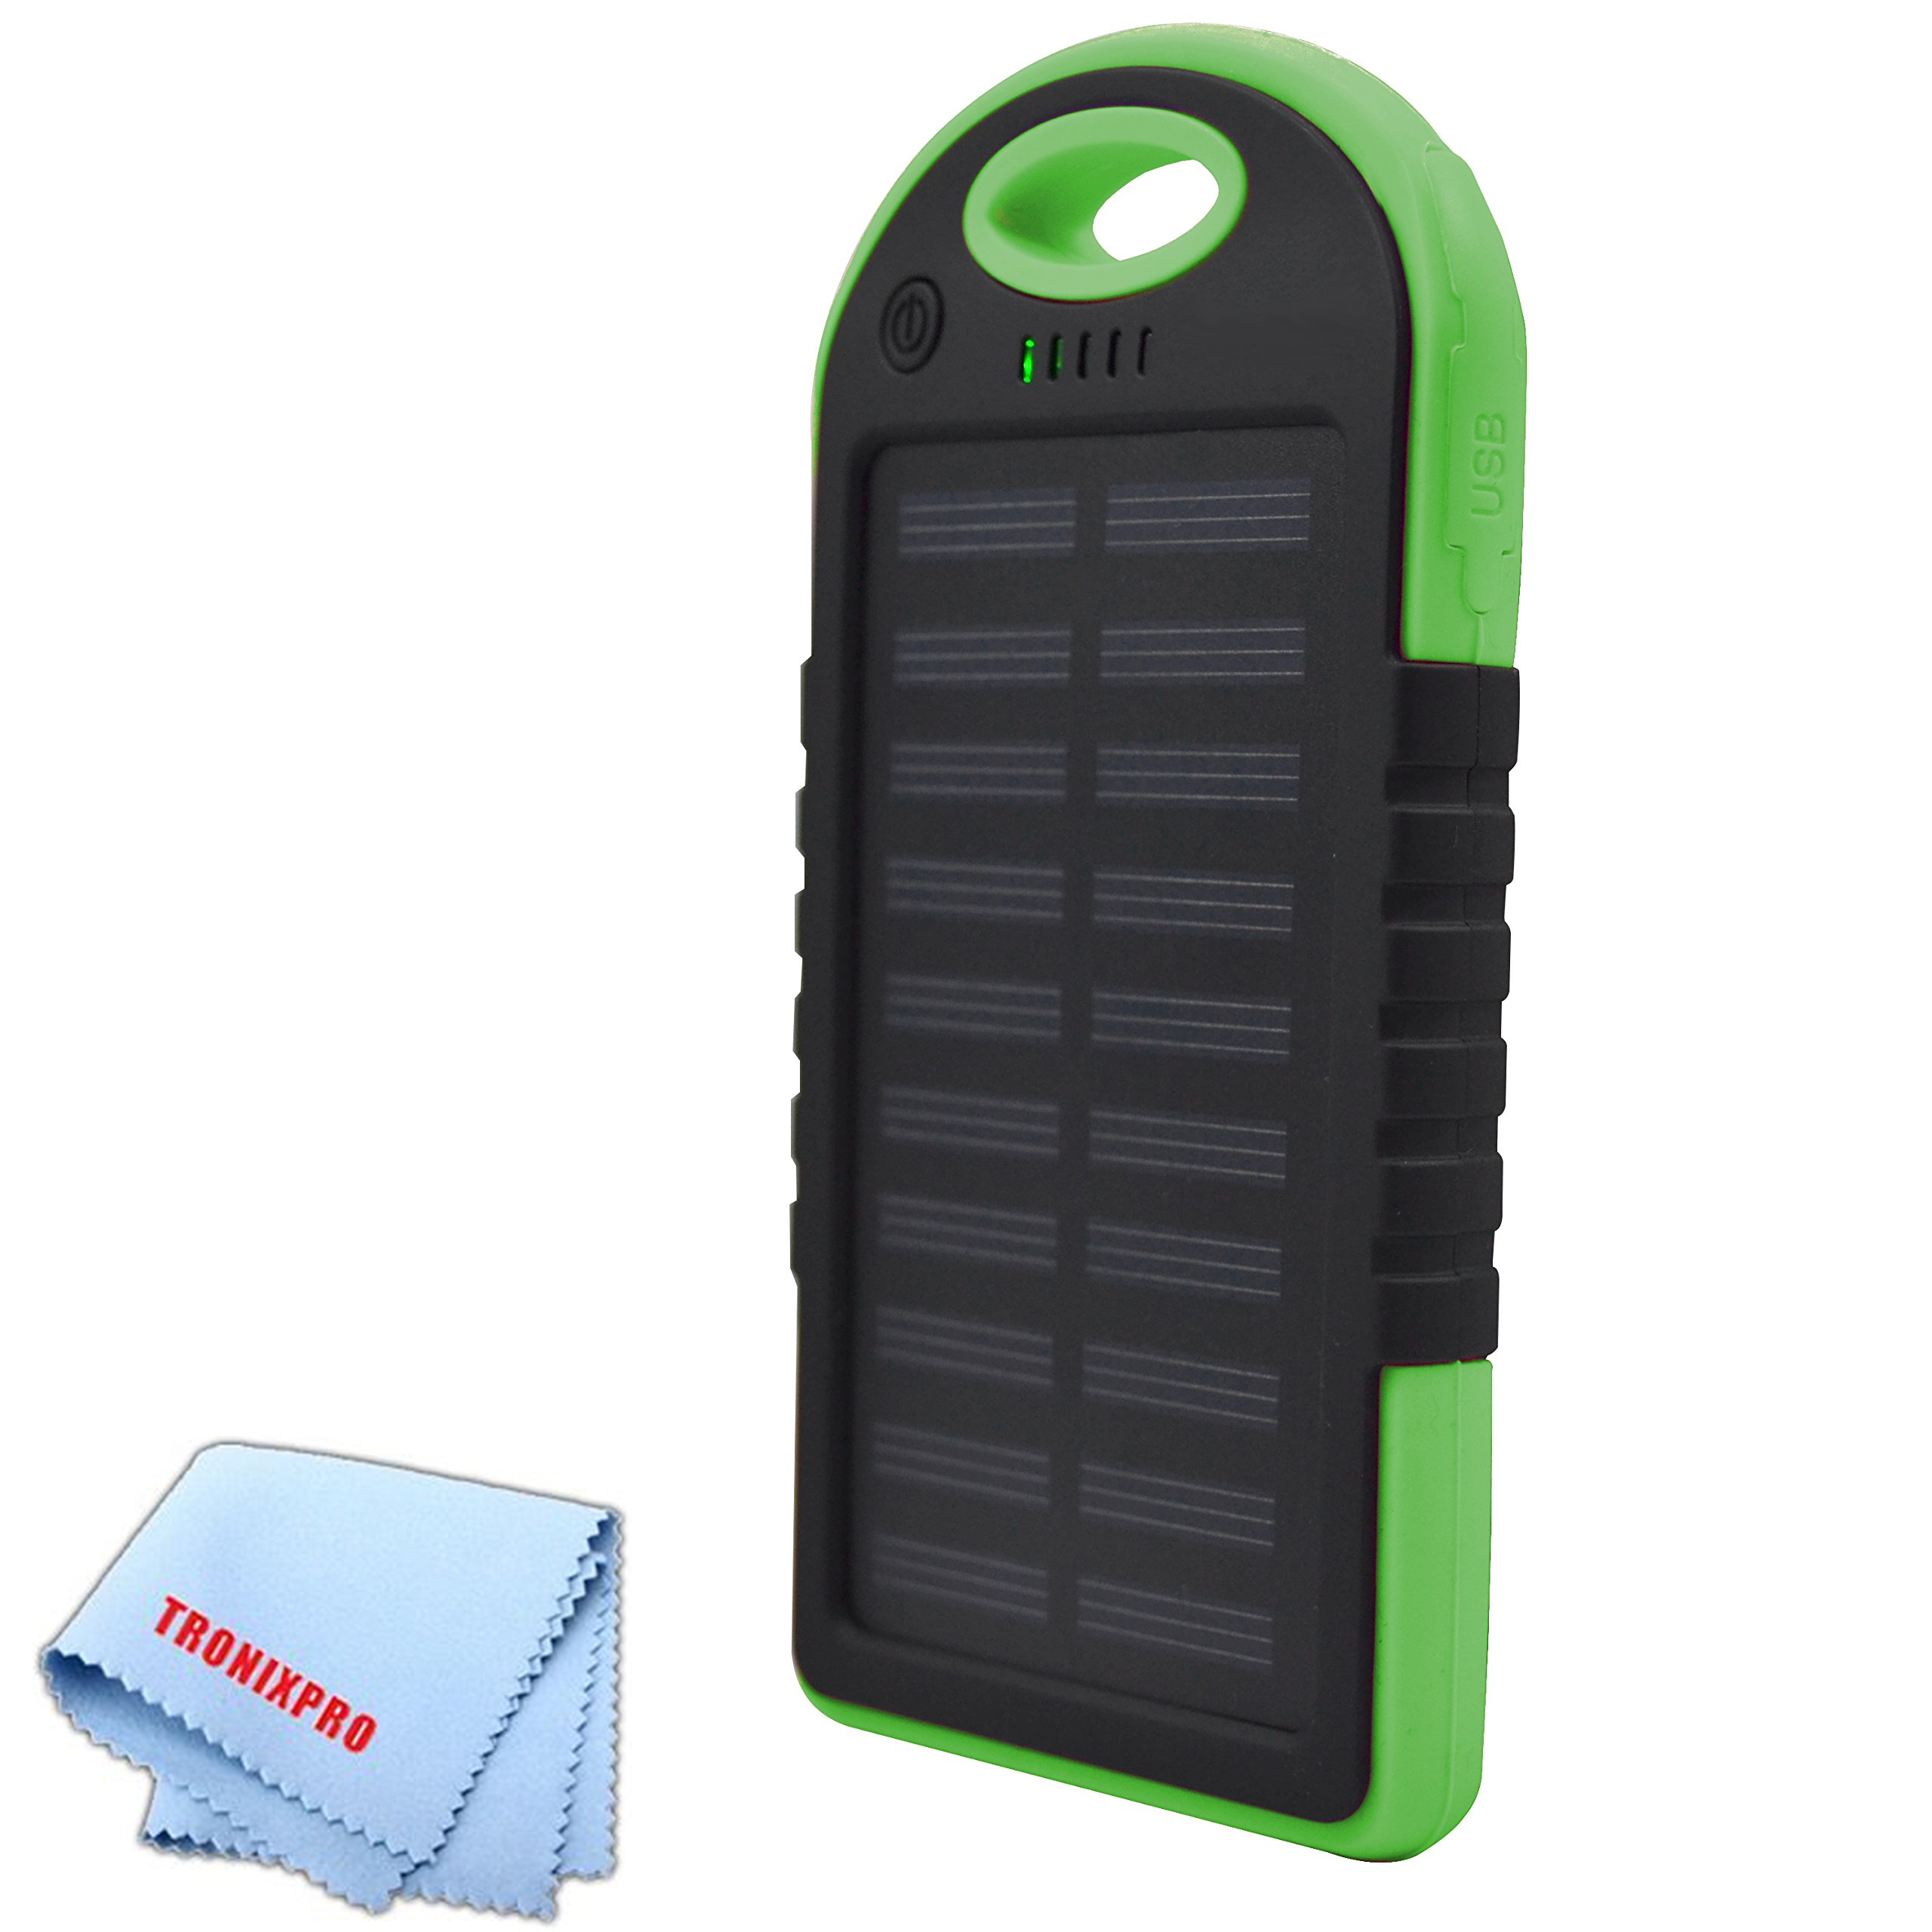 7000mAh Solar cell Water resistant Battery power bank and with dual USB output and Blacklight (Green) + Tronixpro Microfiber Cloth